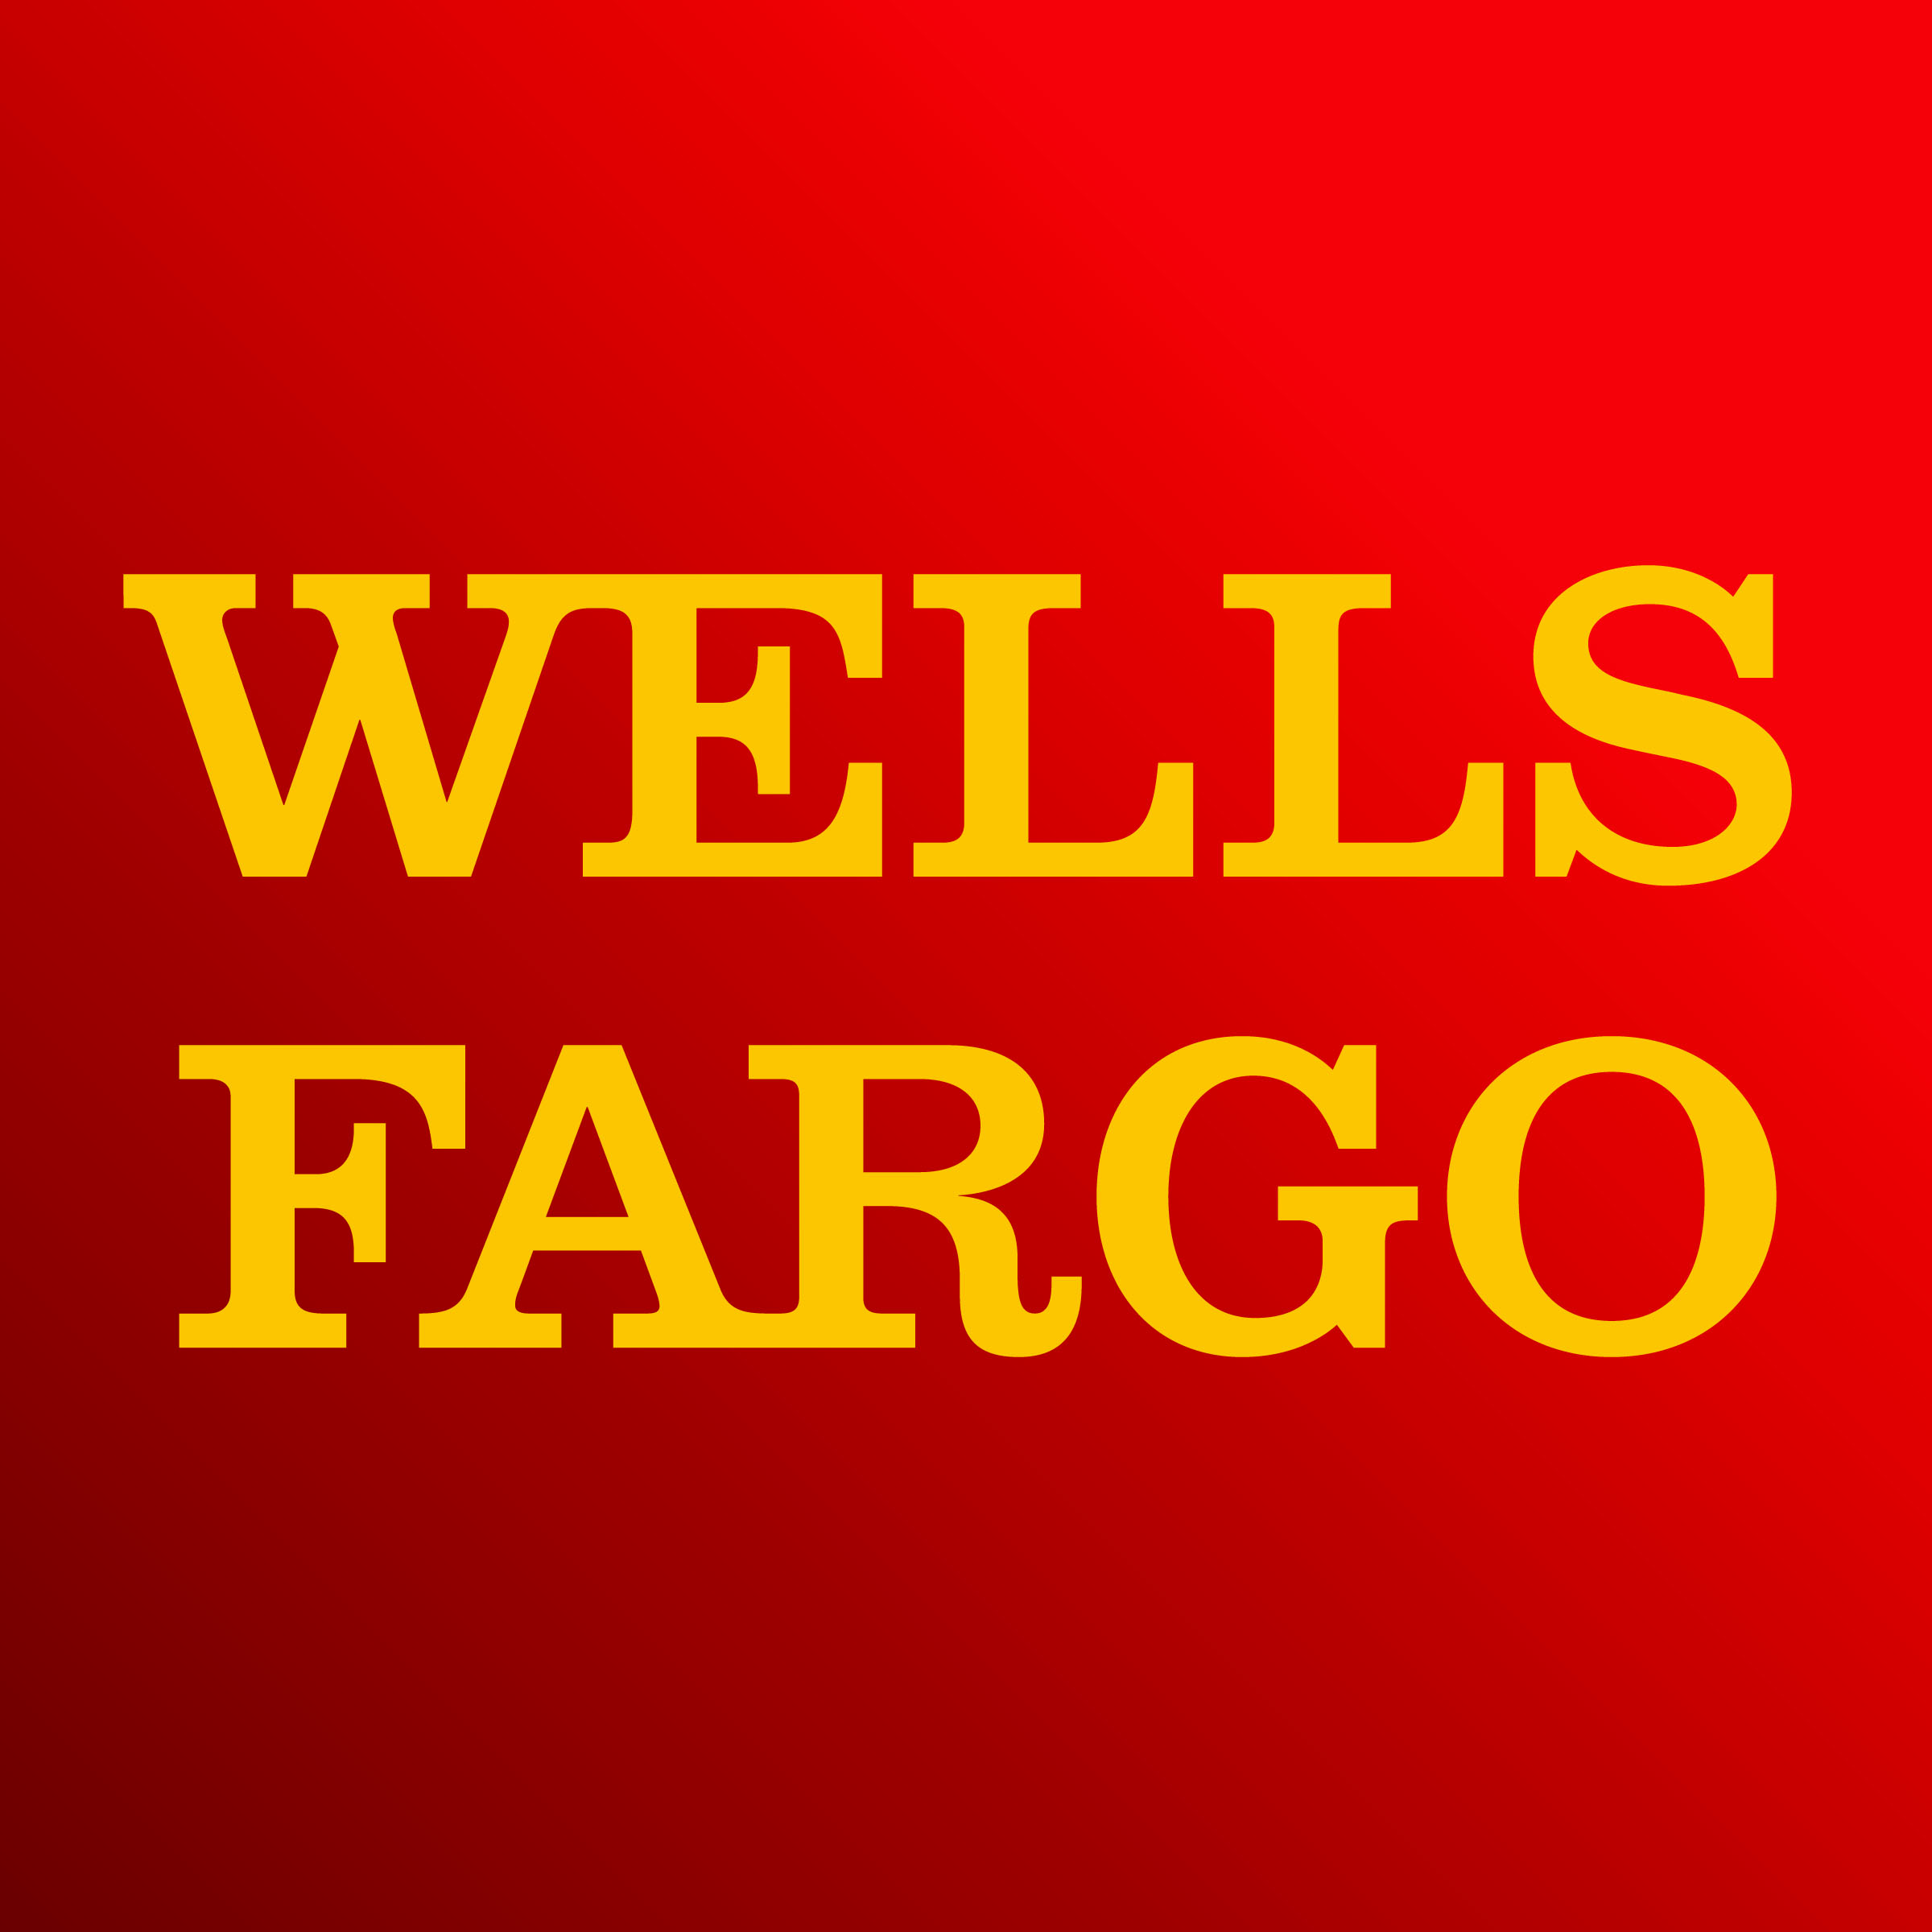 Red Square with Wells Fargo yellow logo